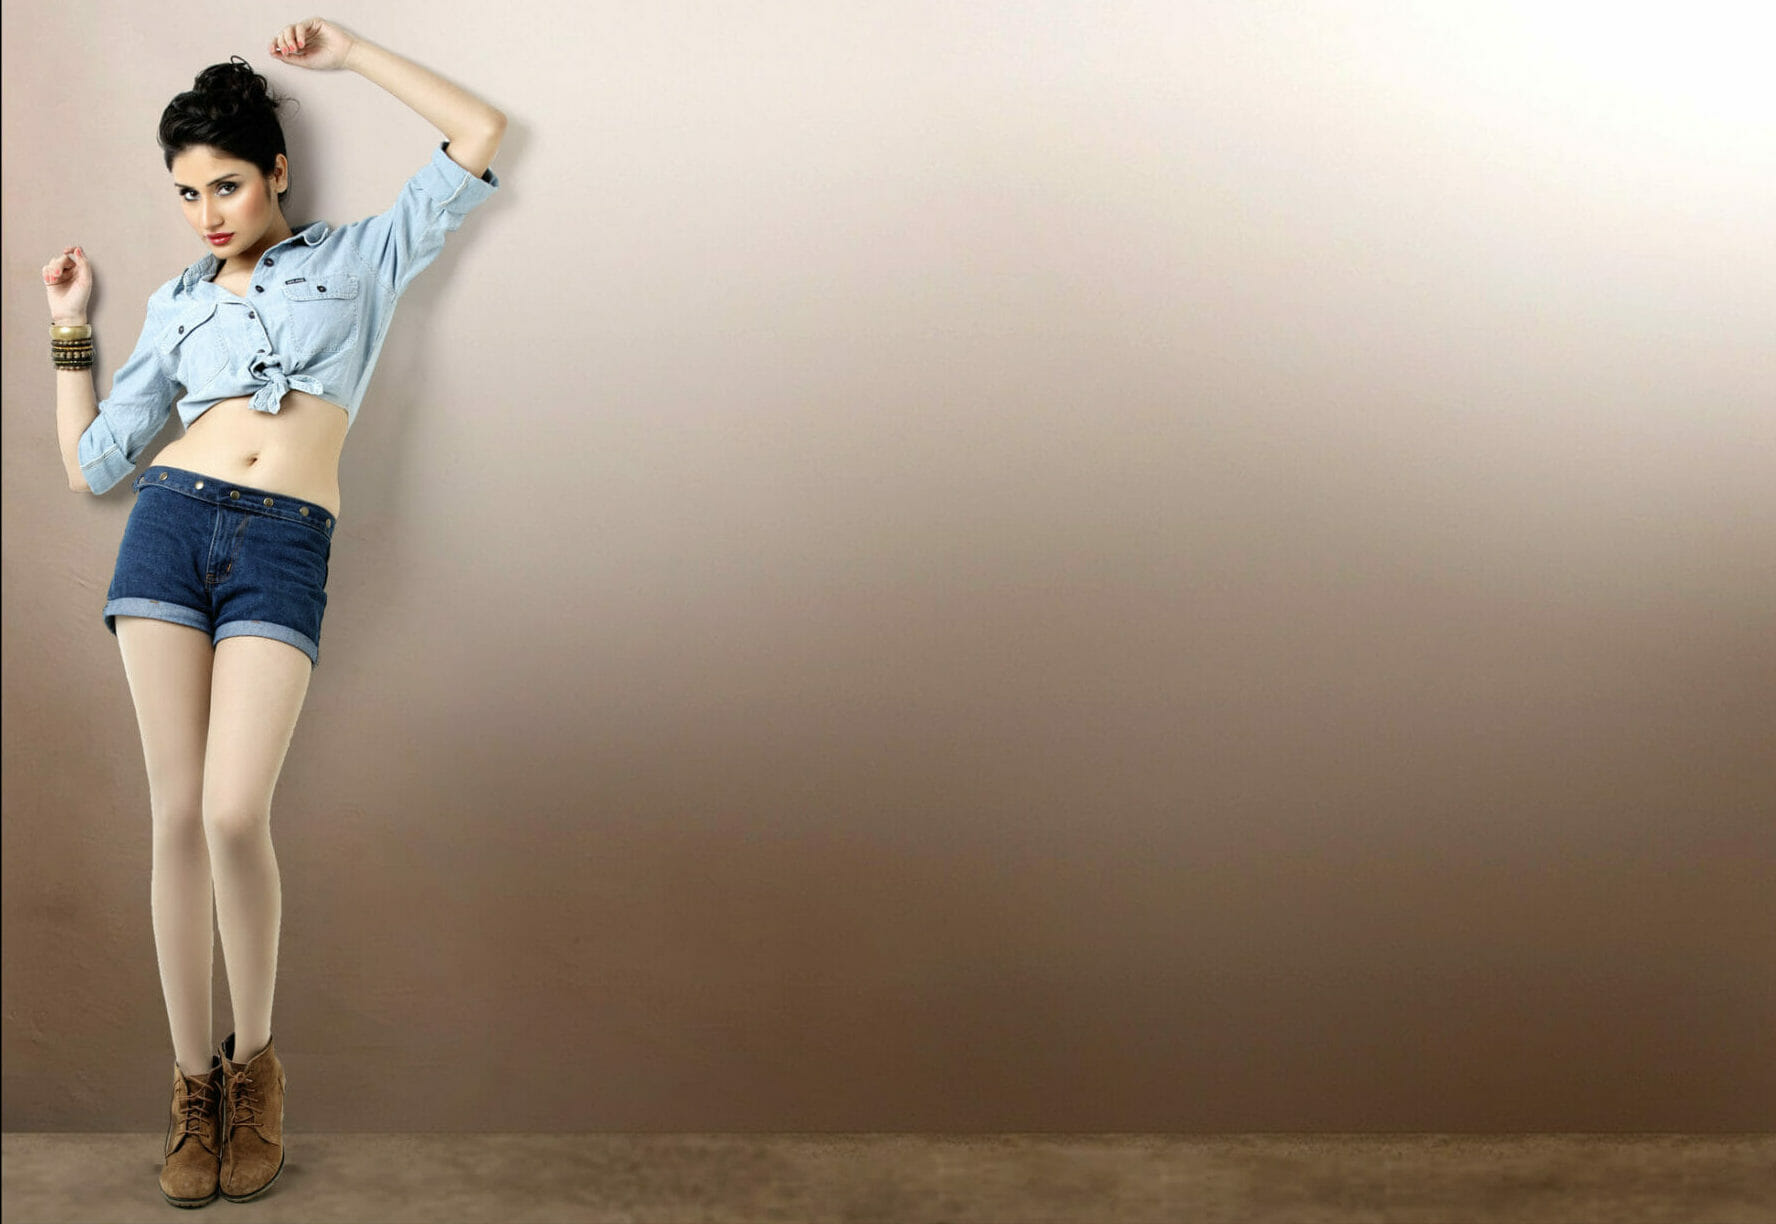 best female model photography in india,